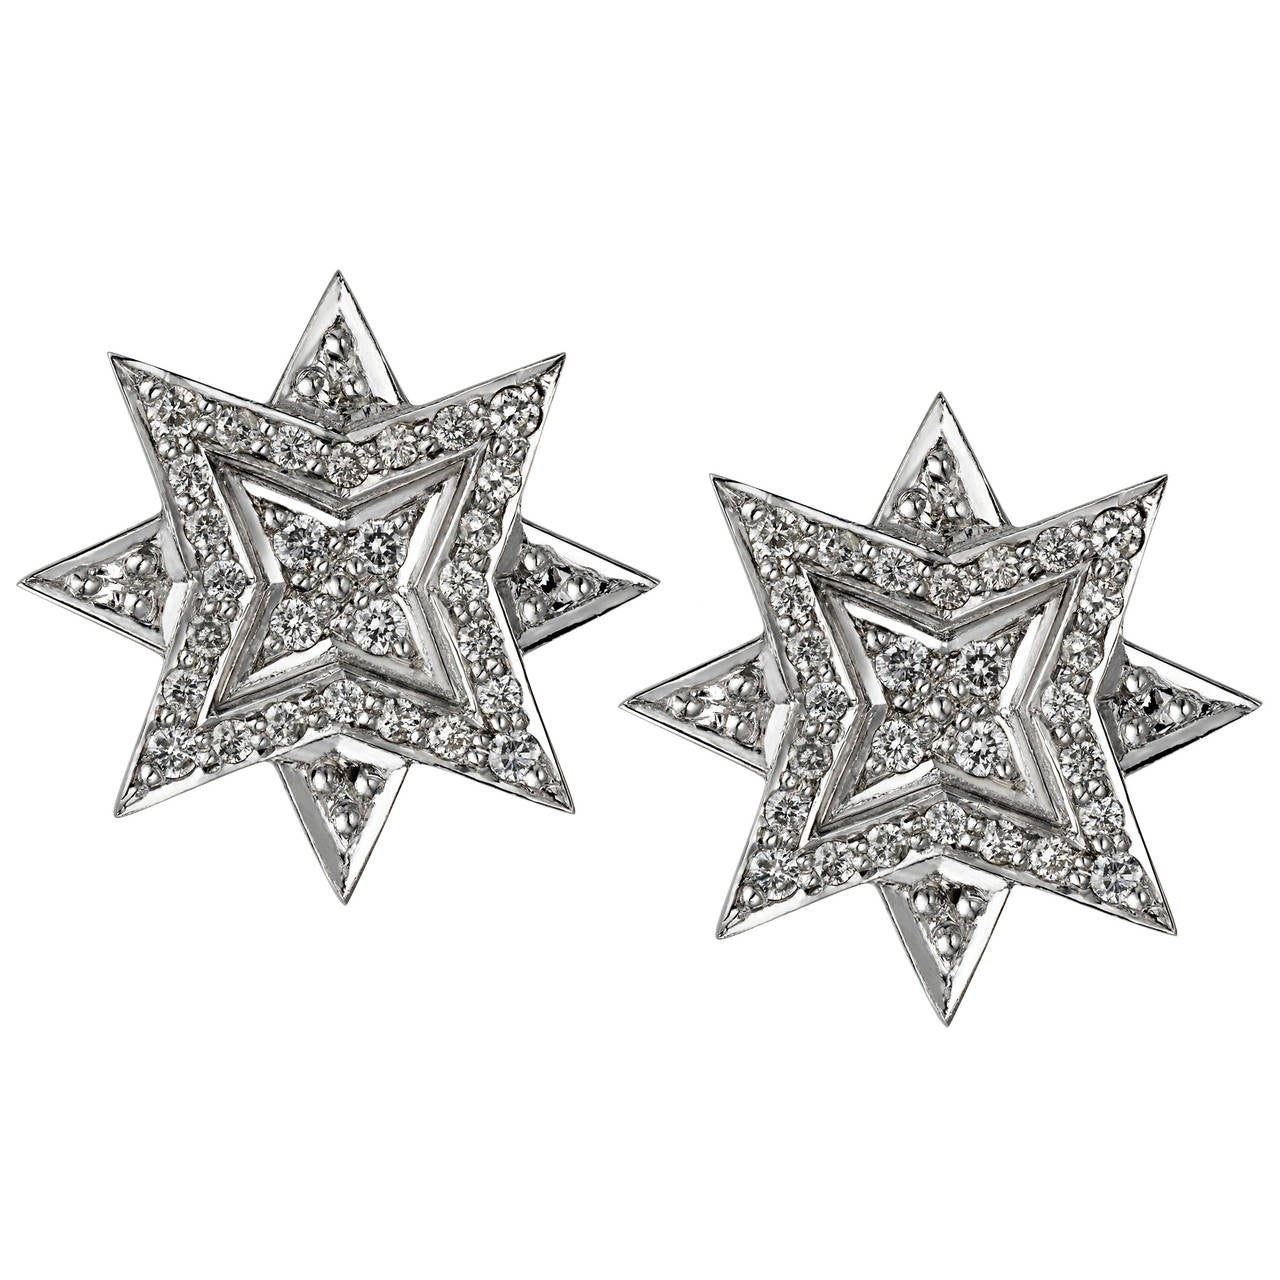 ana de costa silver white diamond star earrings at 1stdibs. Black Bedroom Furniture Sets. Home Design Ideas